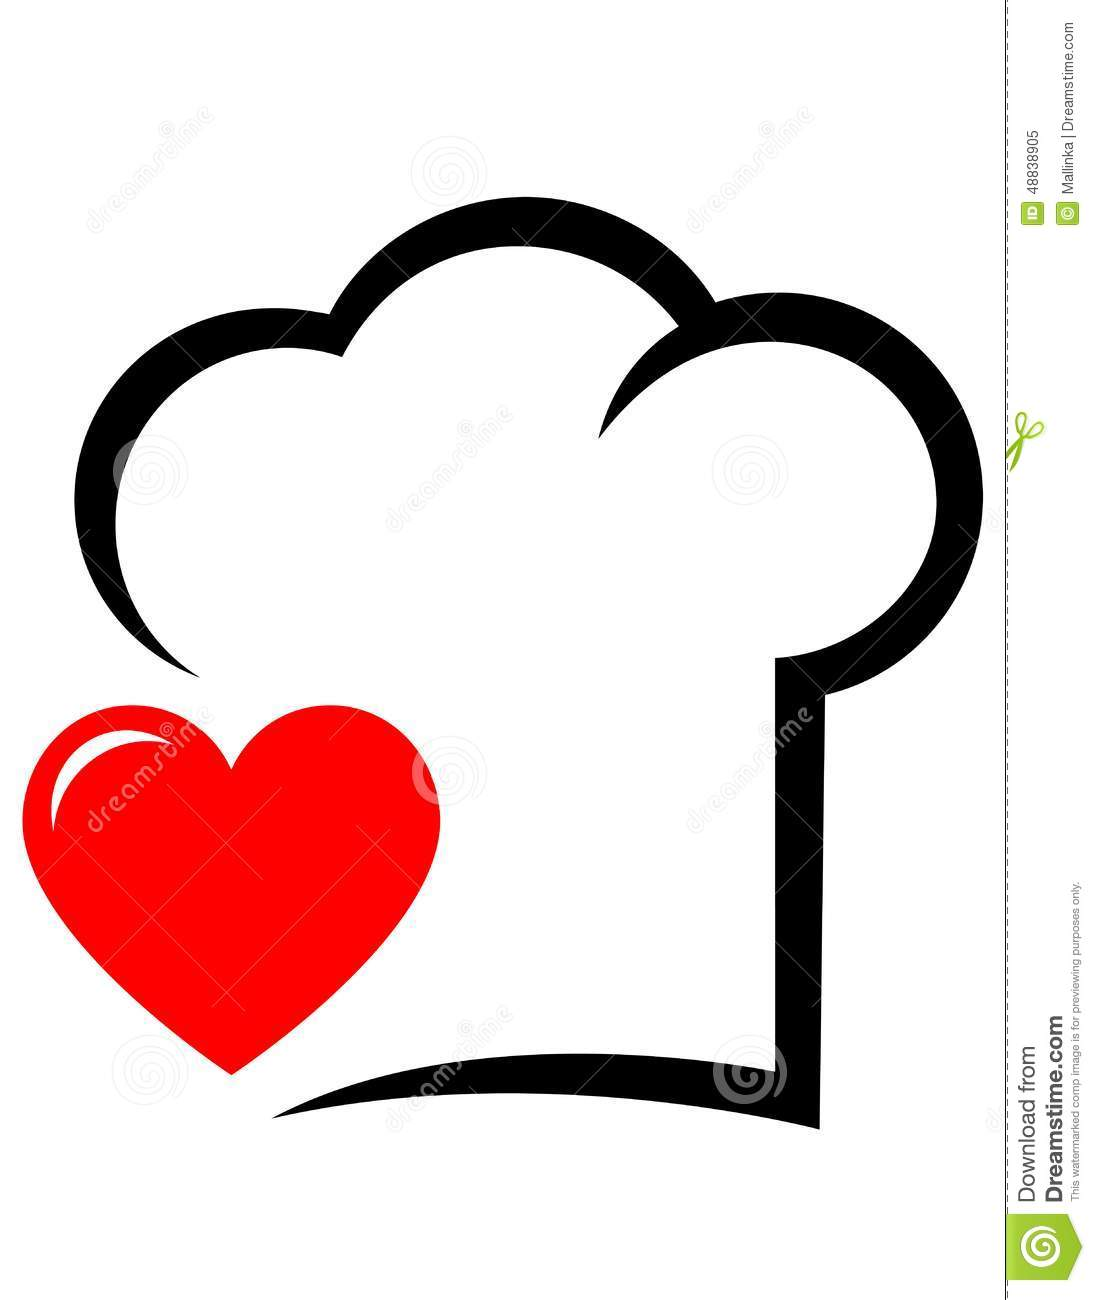 Icon with abstract chef hat and red heart on white background.